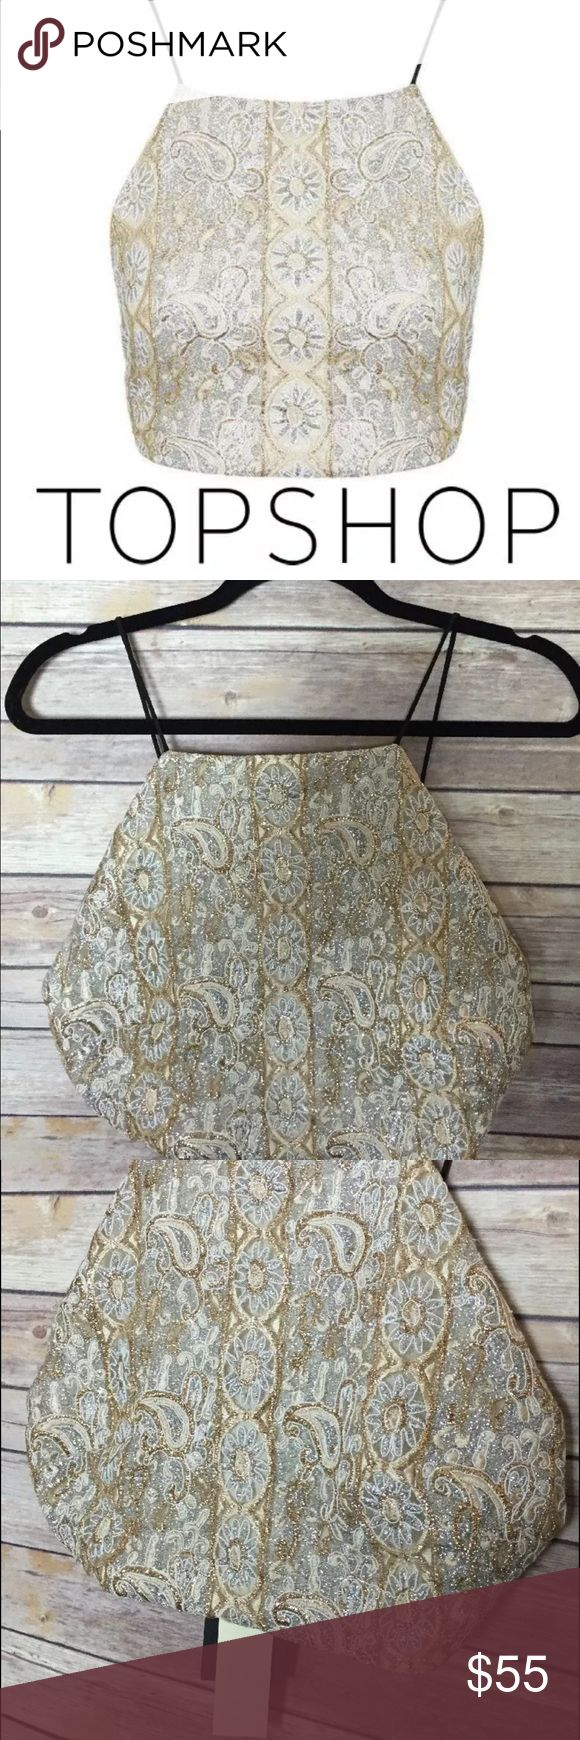 TopShop Gold Silver Crop Top Embellished Bralet ◑ Excellent Condition ◑ Ships within one day of payment.   ◑ No trades   ✿ Thank you for looking & feel free to check out my other items! ✿ Topshop Tops Crop Tops